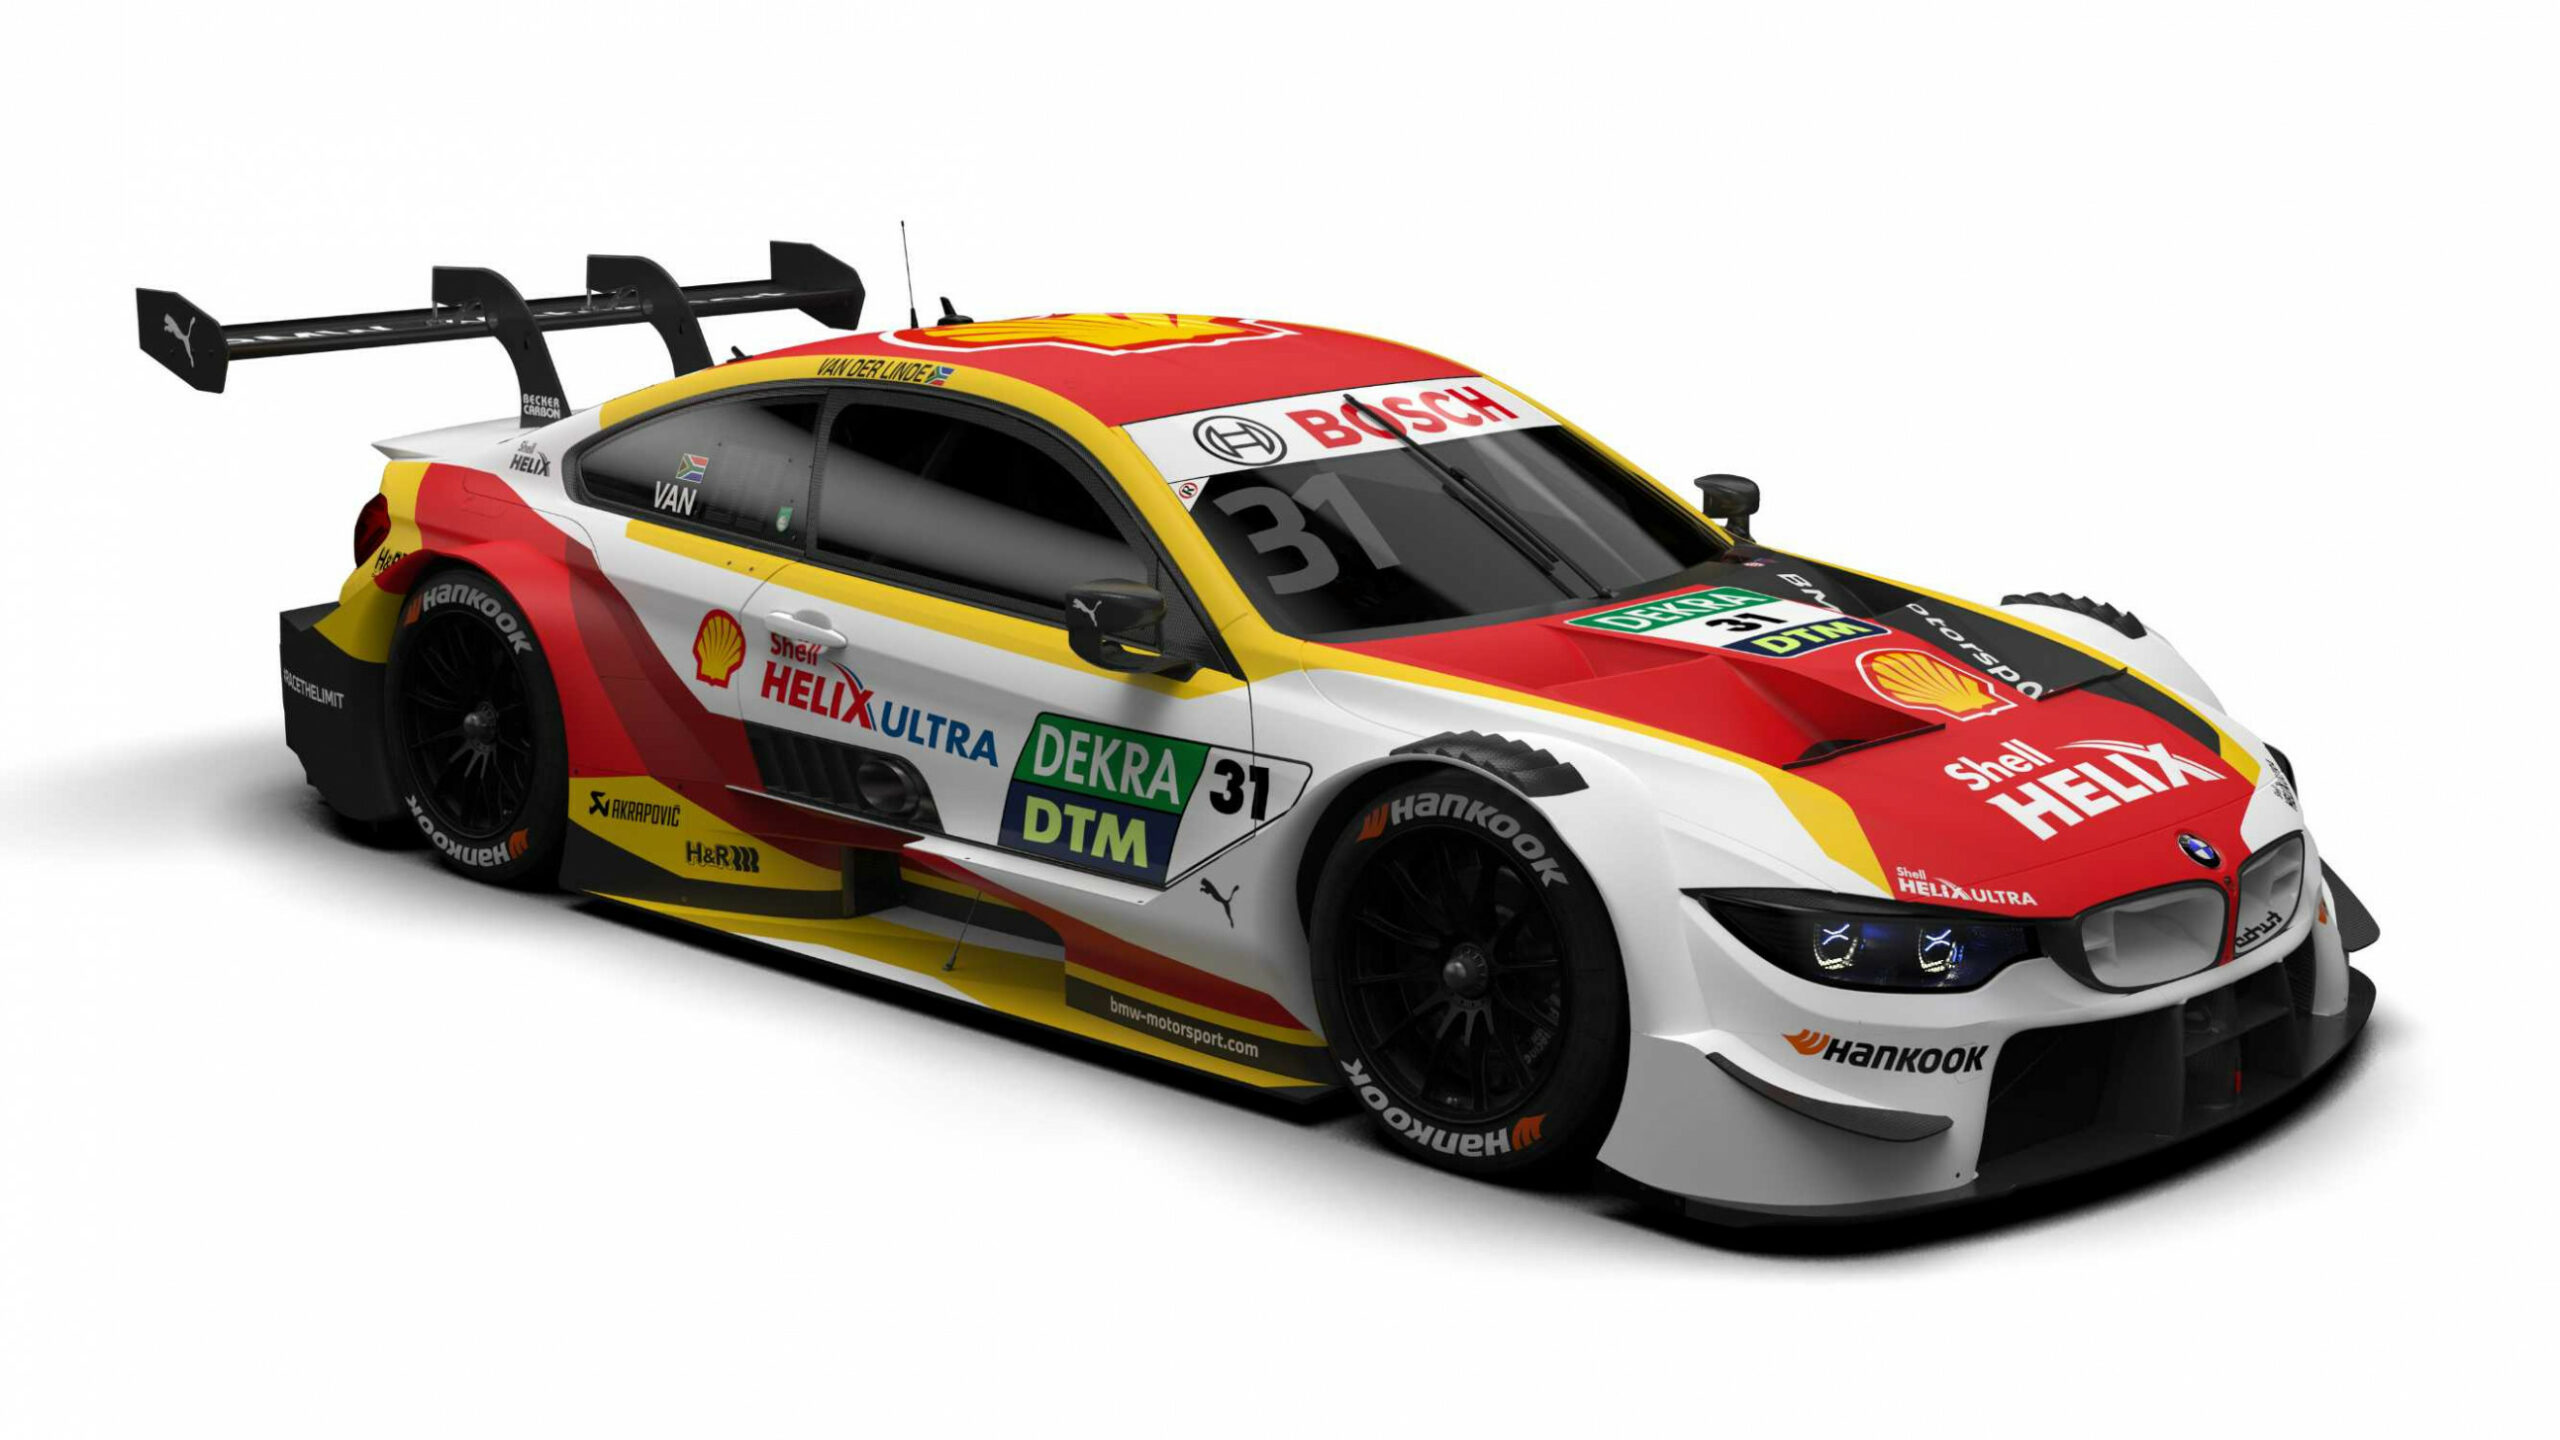 Strong together: BMW M Motorsport and its partners to continue the ..